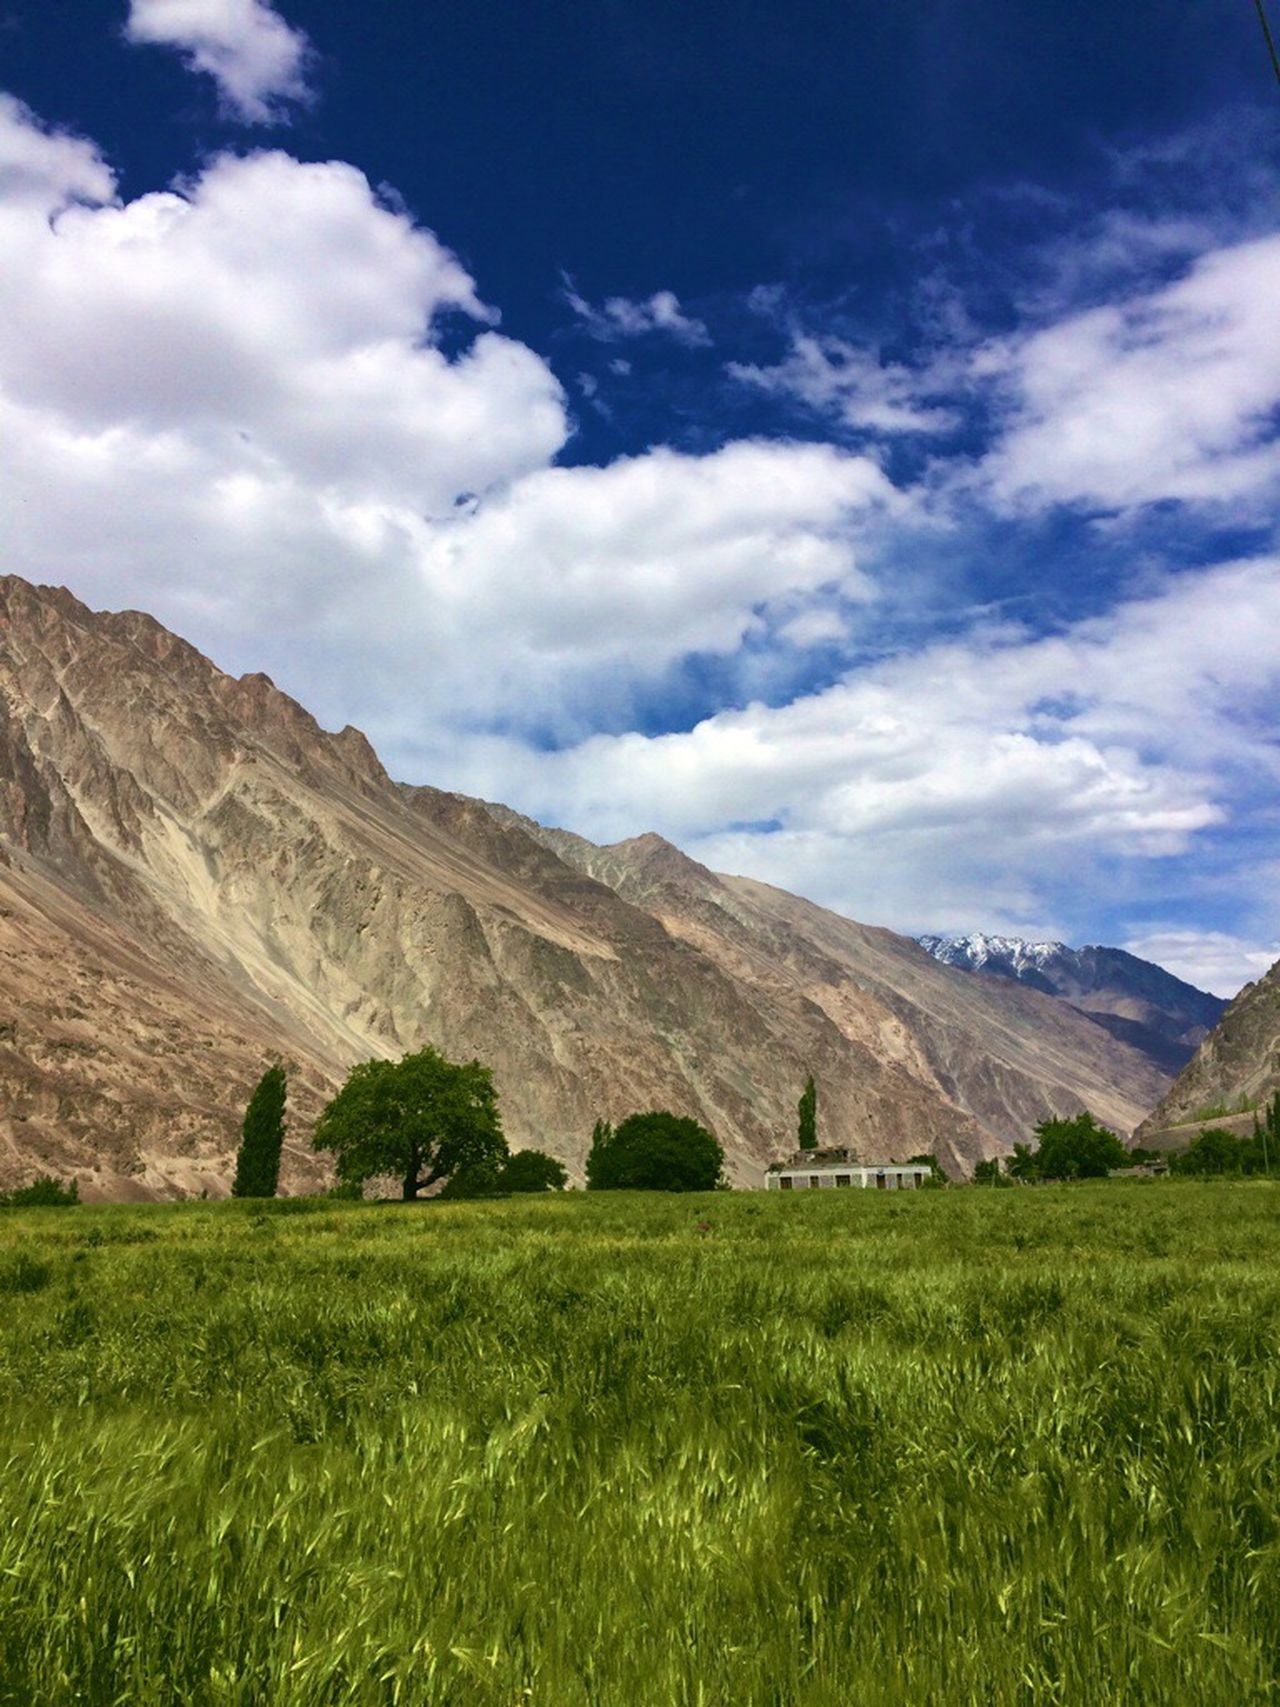 Landscape Grass Tranquil Scene Scenics Tranquility Solitude Sky Countryside Field Non-urban Scene Cloud Grassy Nature Growth Beauty In Nature Blue Remote Day Green Color Plant India JammuandKashmir Turtuk